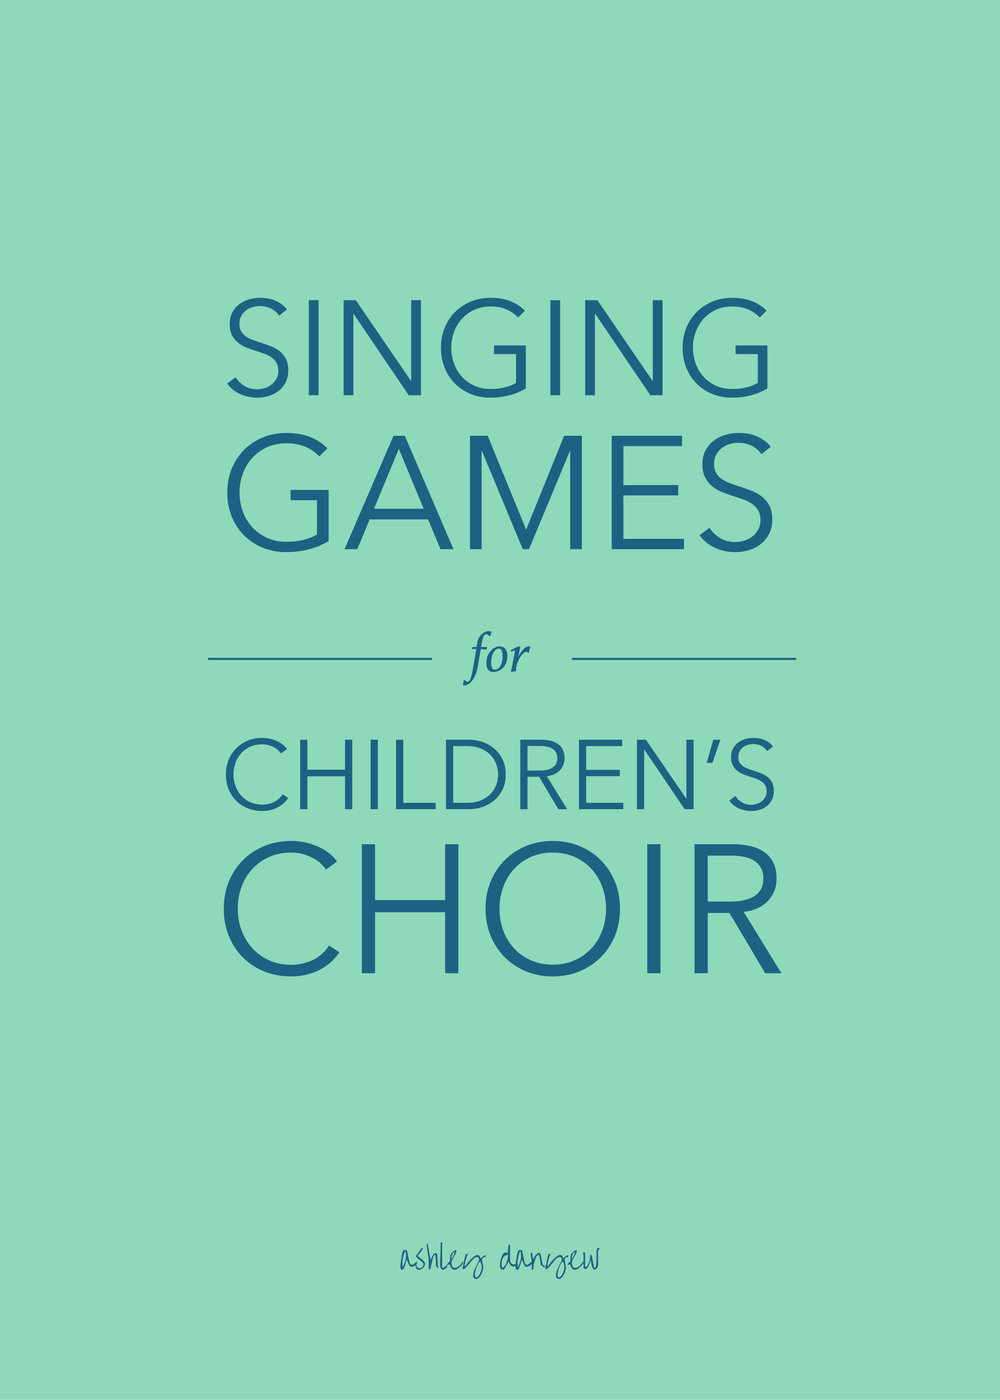 Singing Games for Children's Choir-01.png